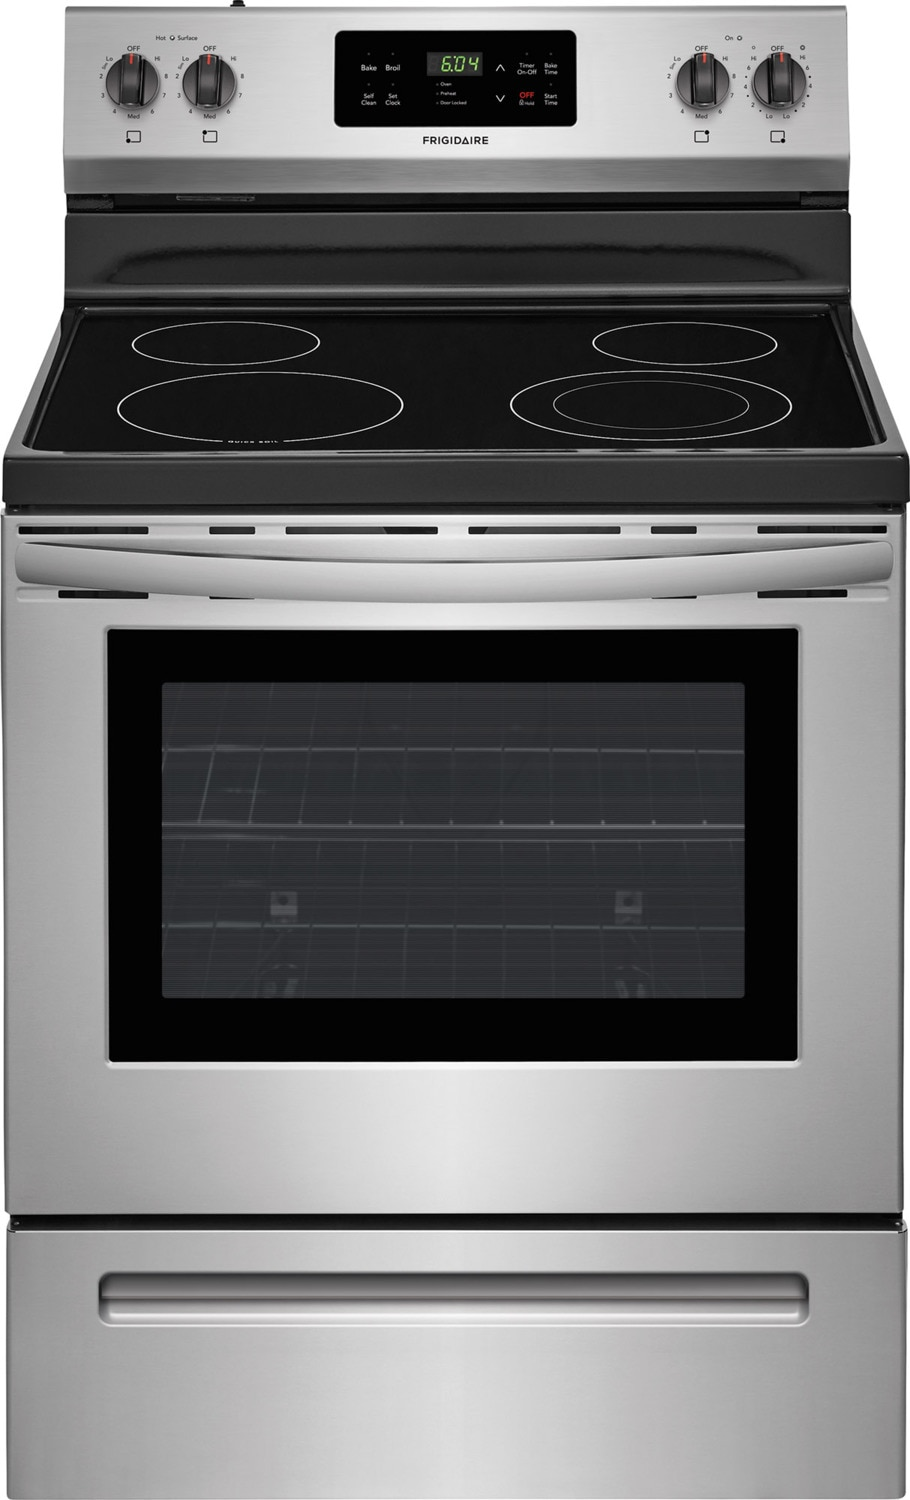 Frigidaire Stainless Steel Freestanding Electric Range (5.3 Cu. Ft.) - CFEF3055TS